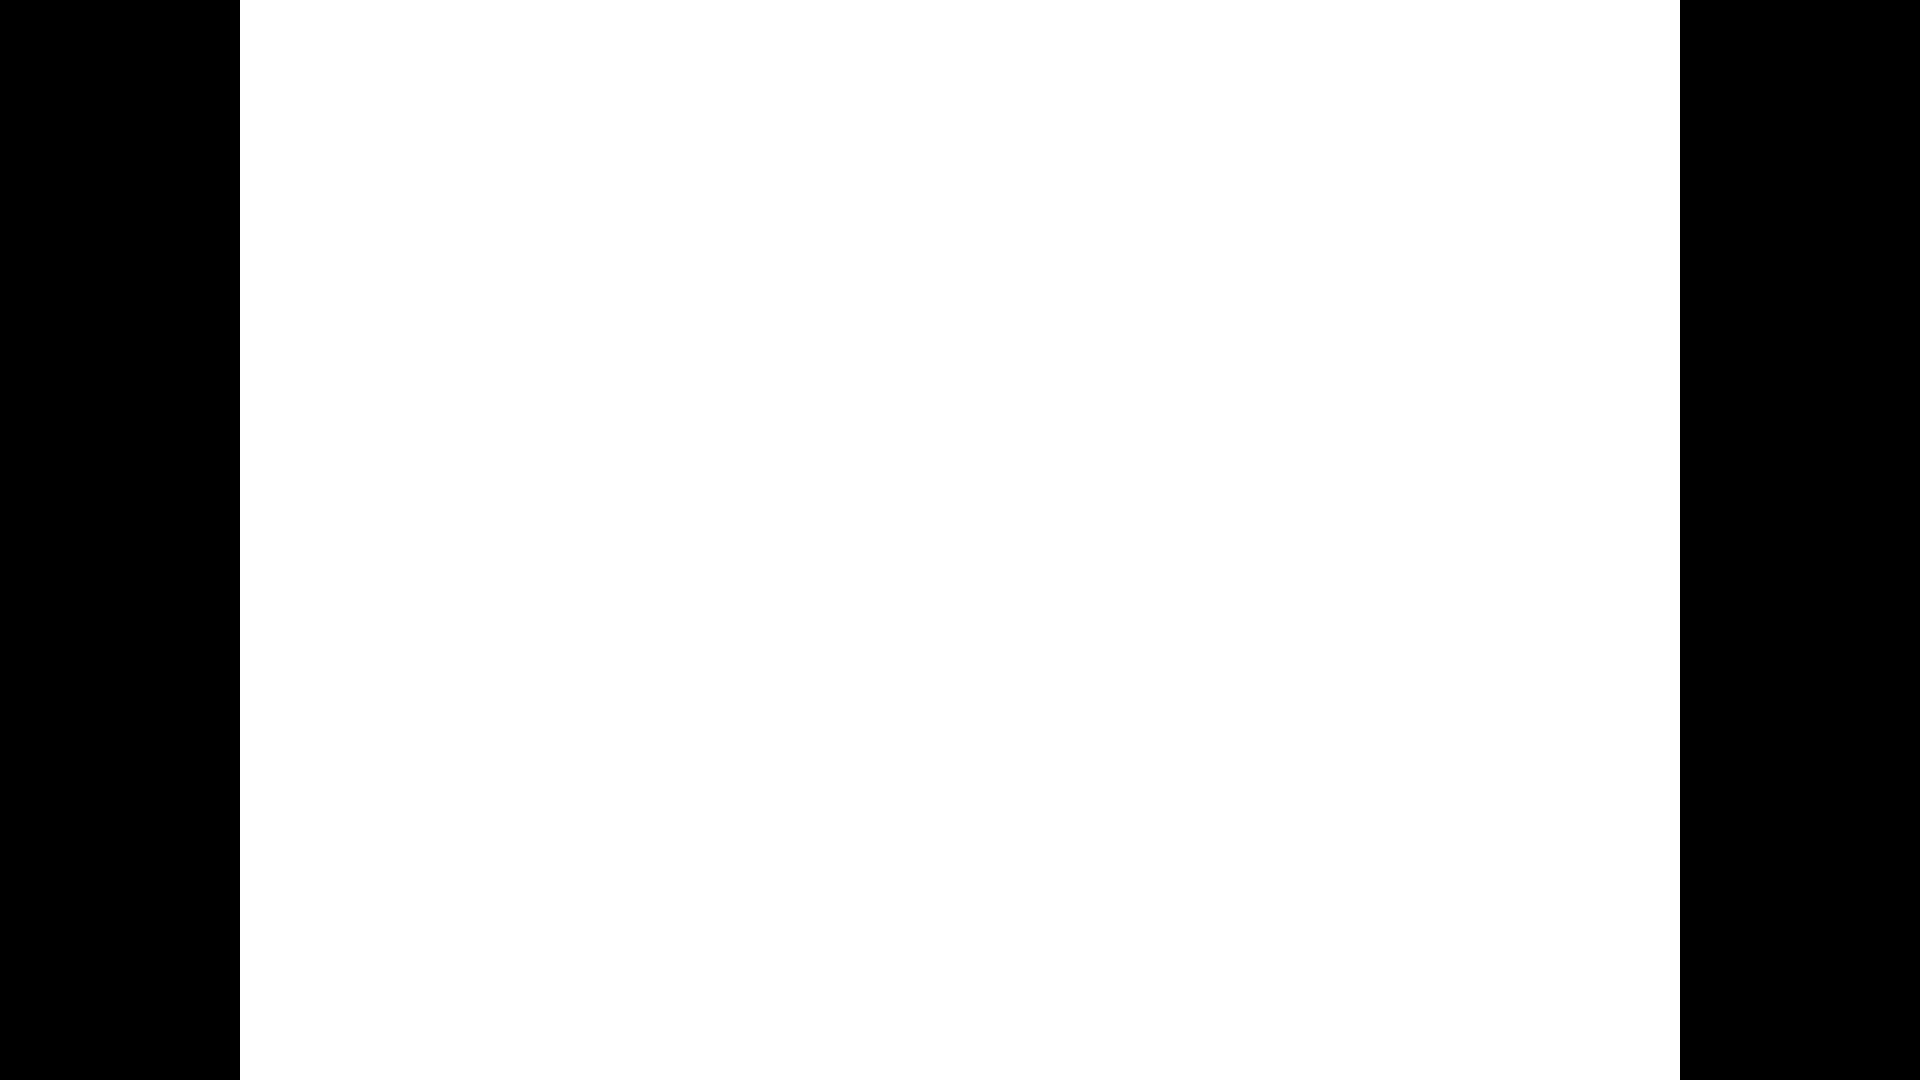 4 3 aspect ratio png. File on svg wikimedia